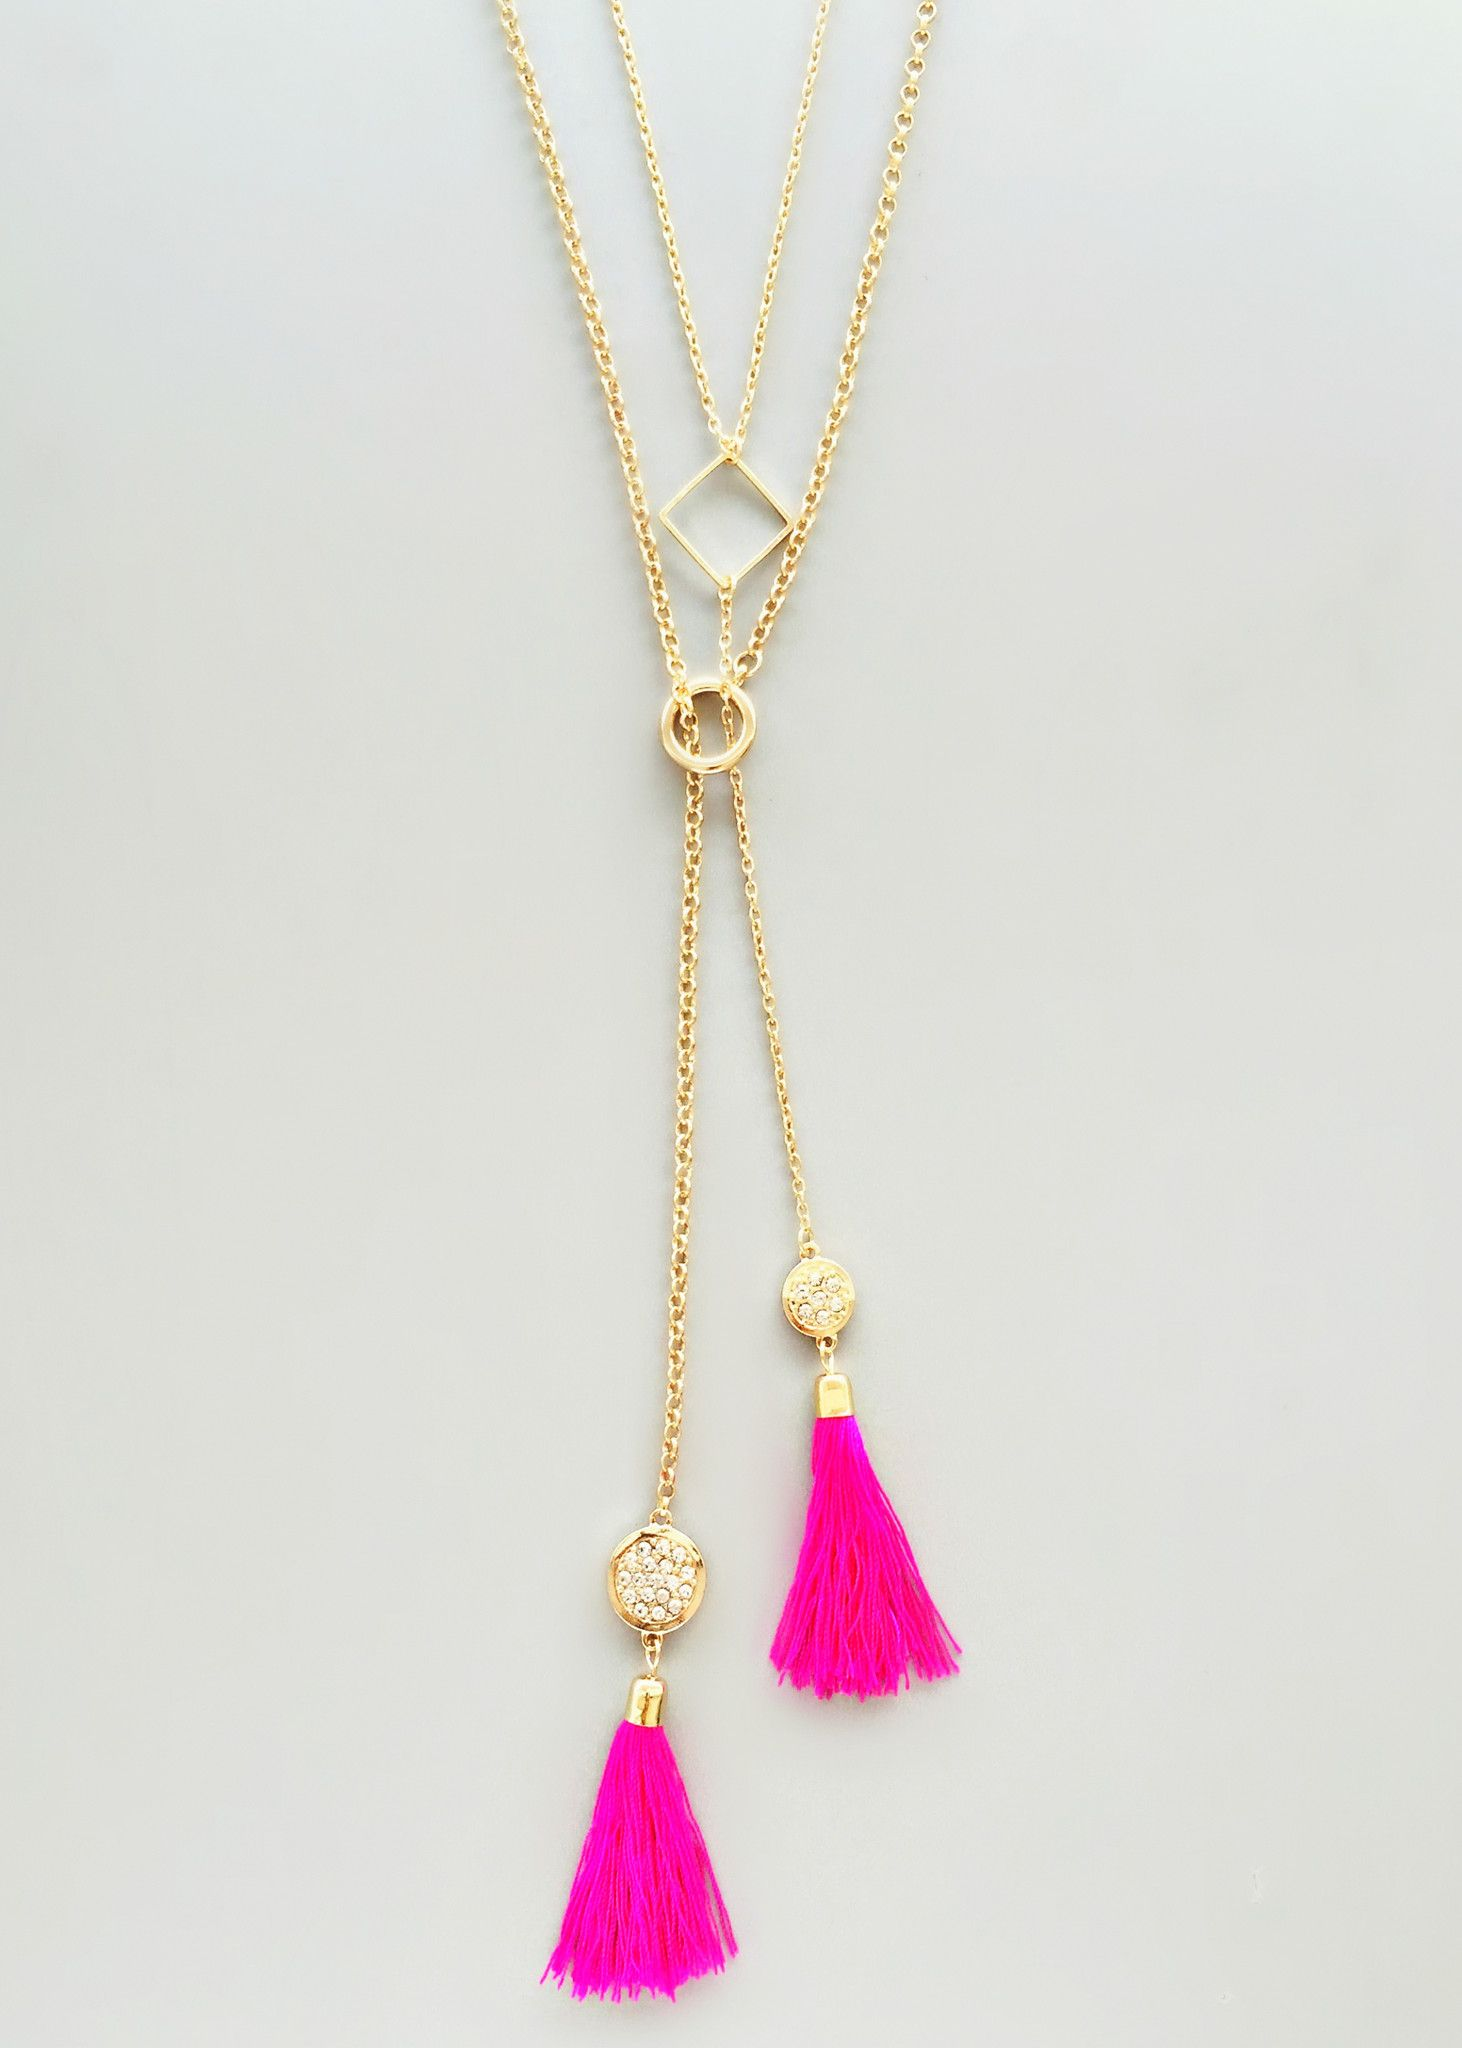 hot pink tassels necklace – pree brulee | necklaces & earrings